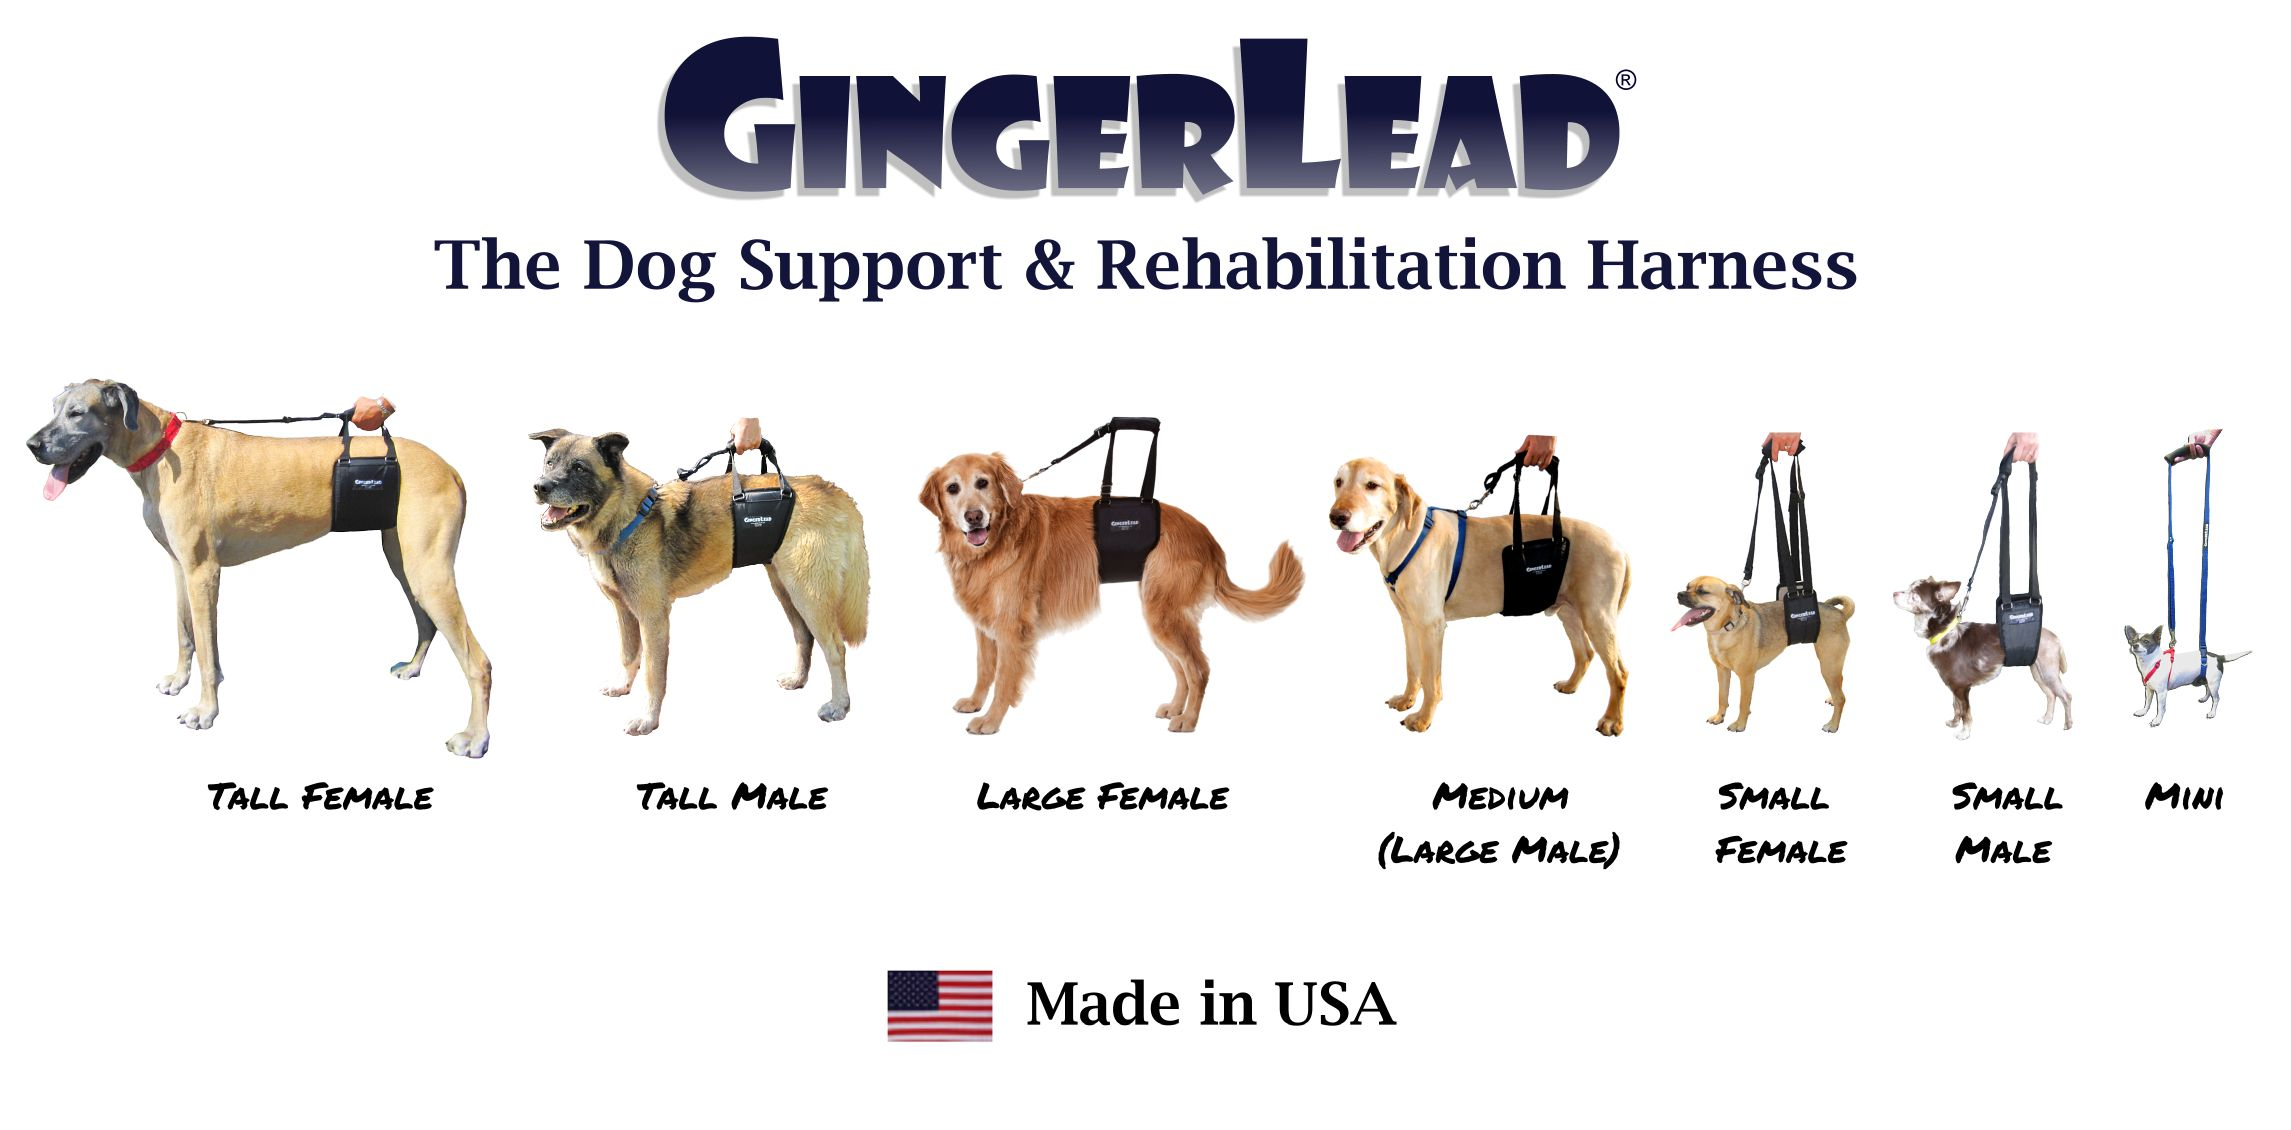 The Gingerlead Dog Support Rehabilitation Harness Is A Premium